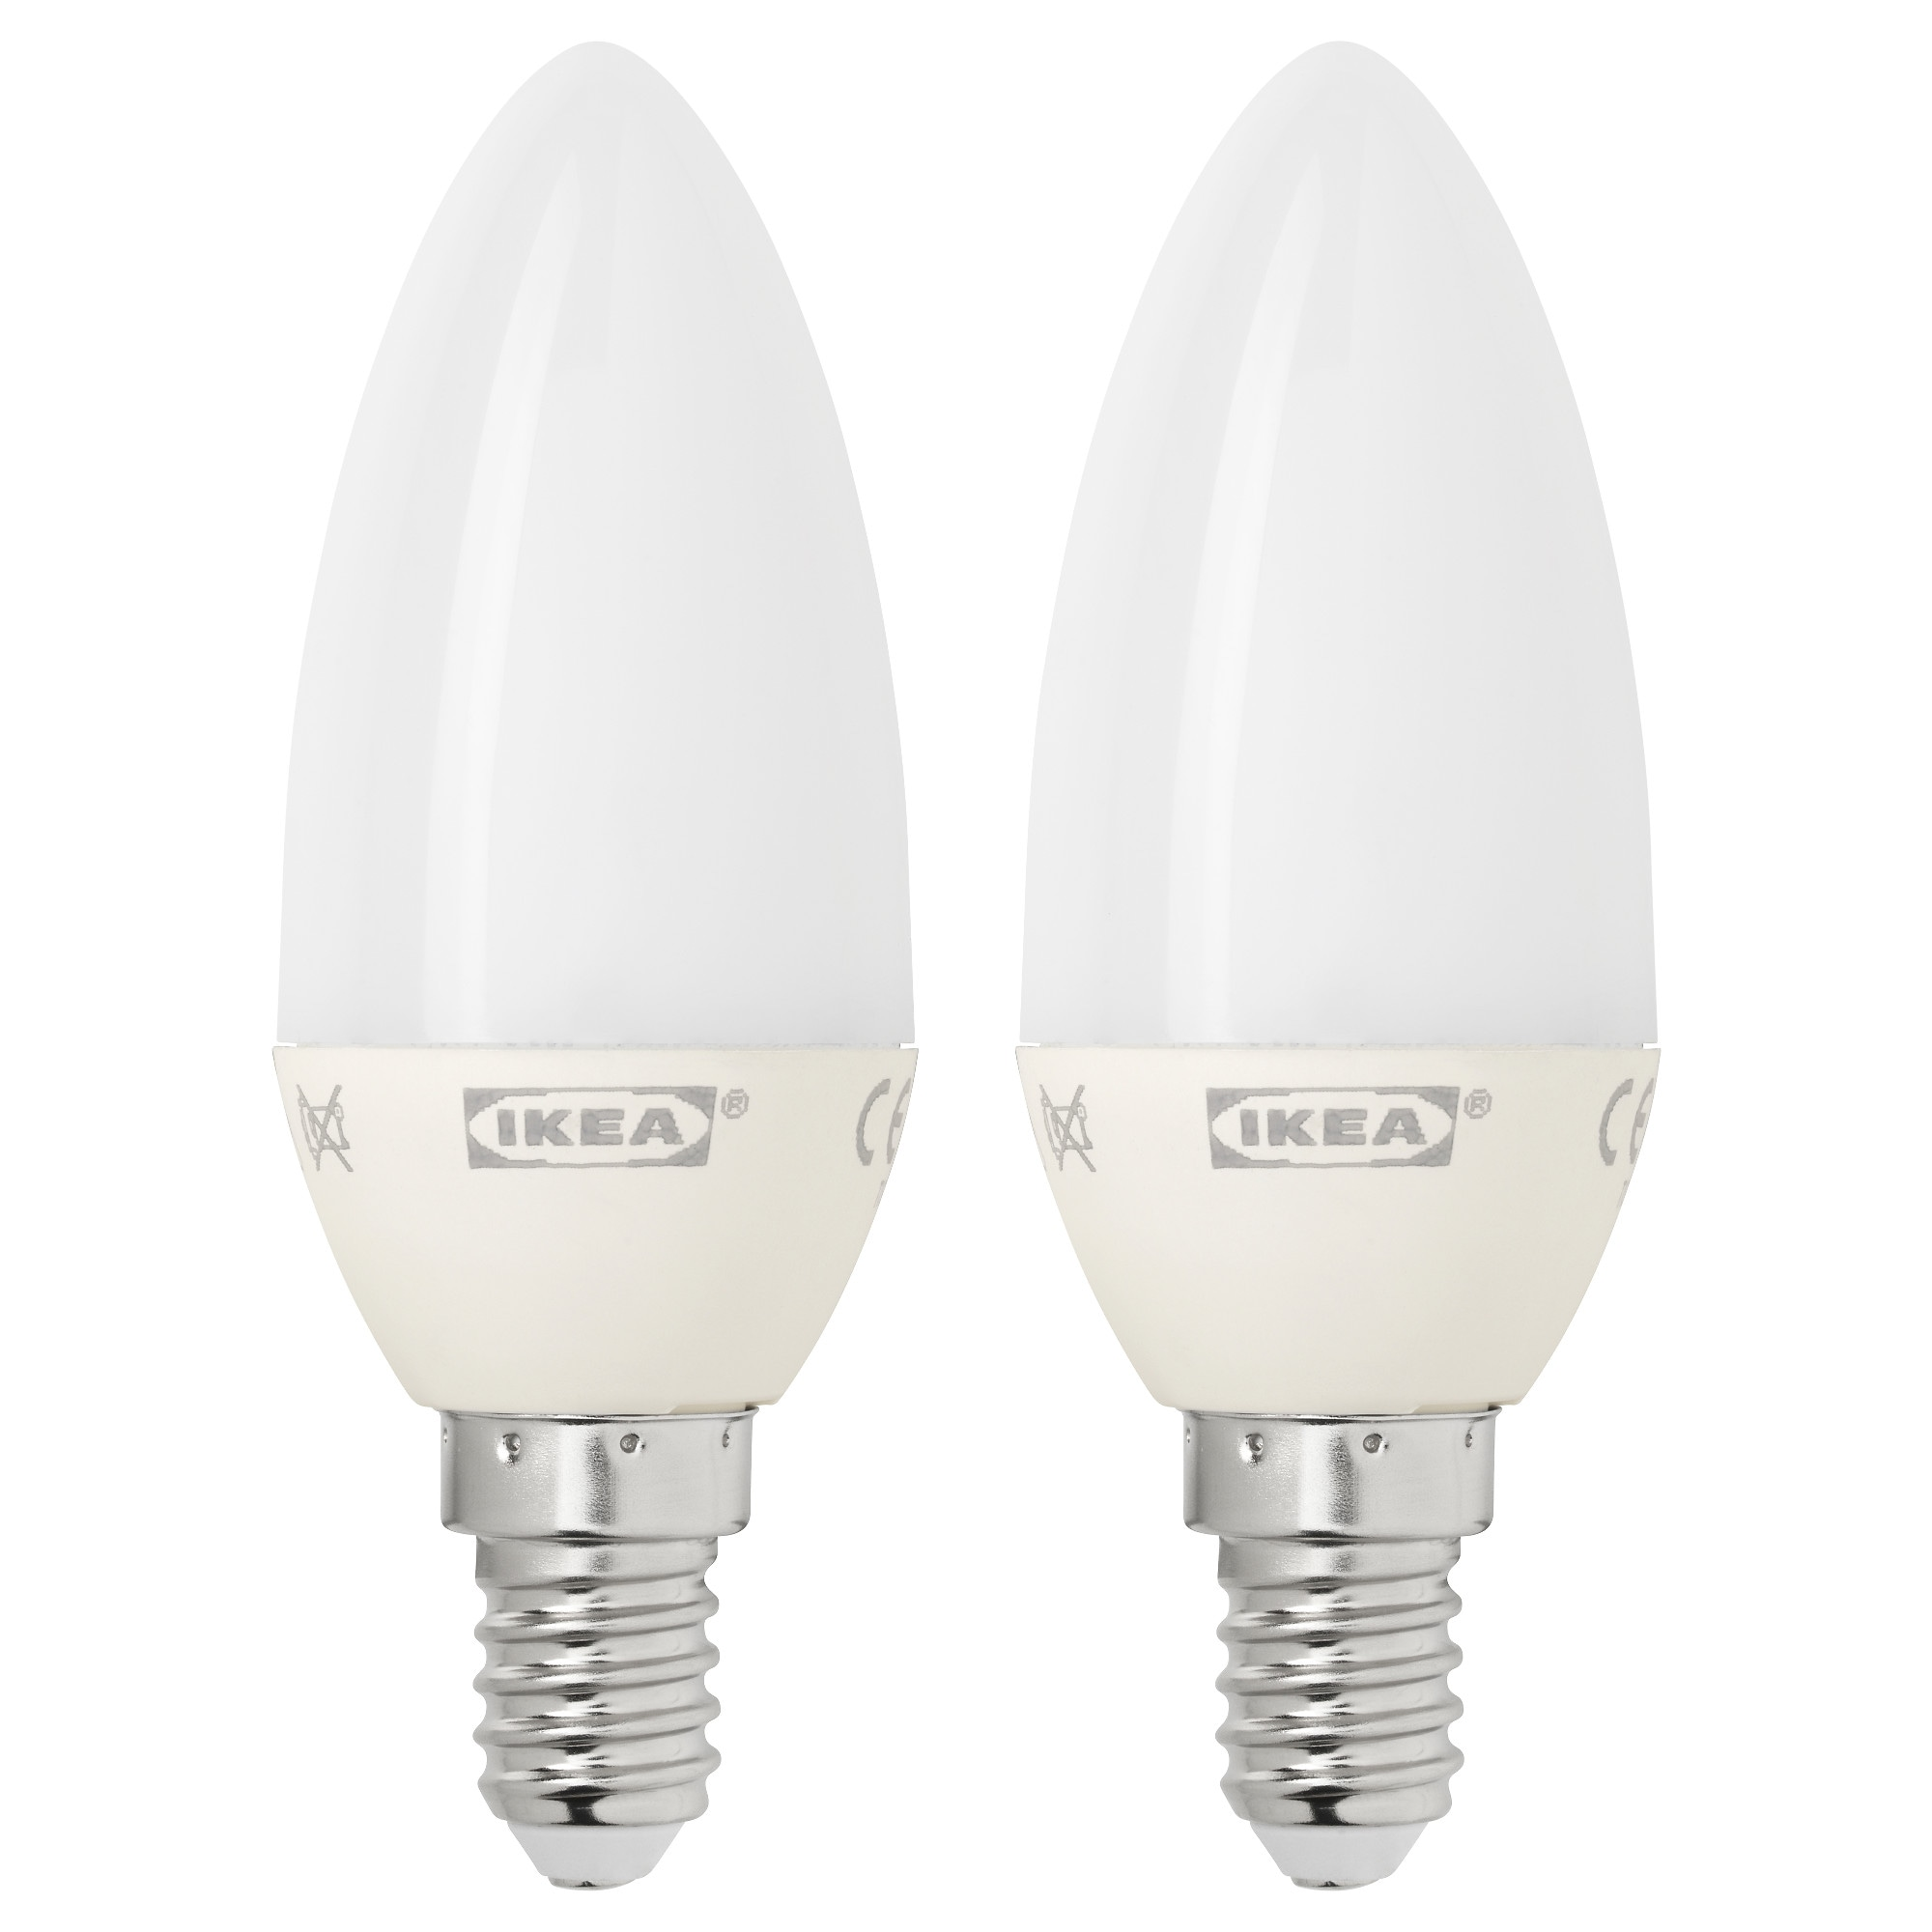 LED lights - LED bulbs & LED lamps - IKEA